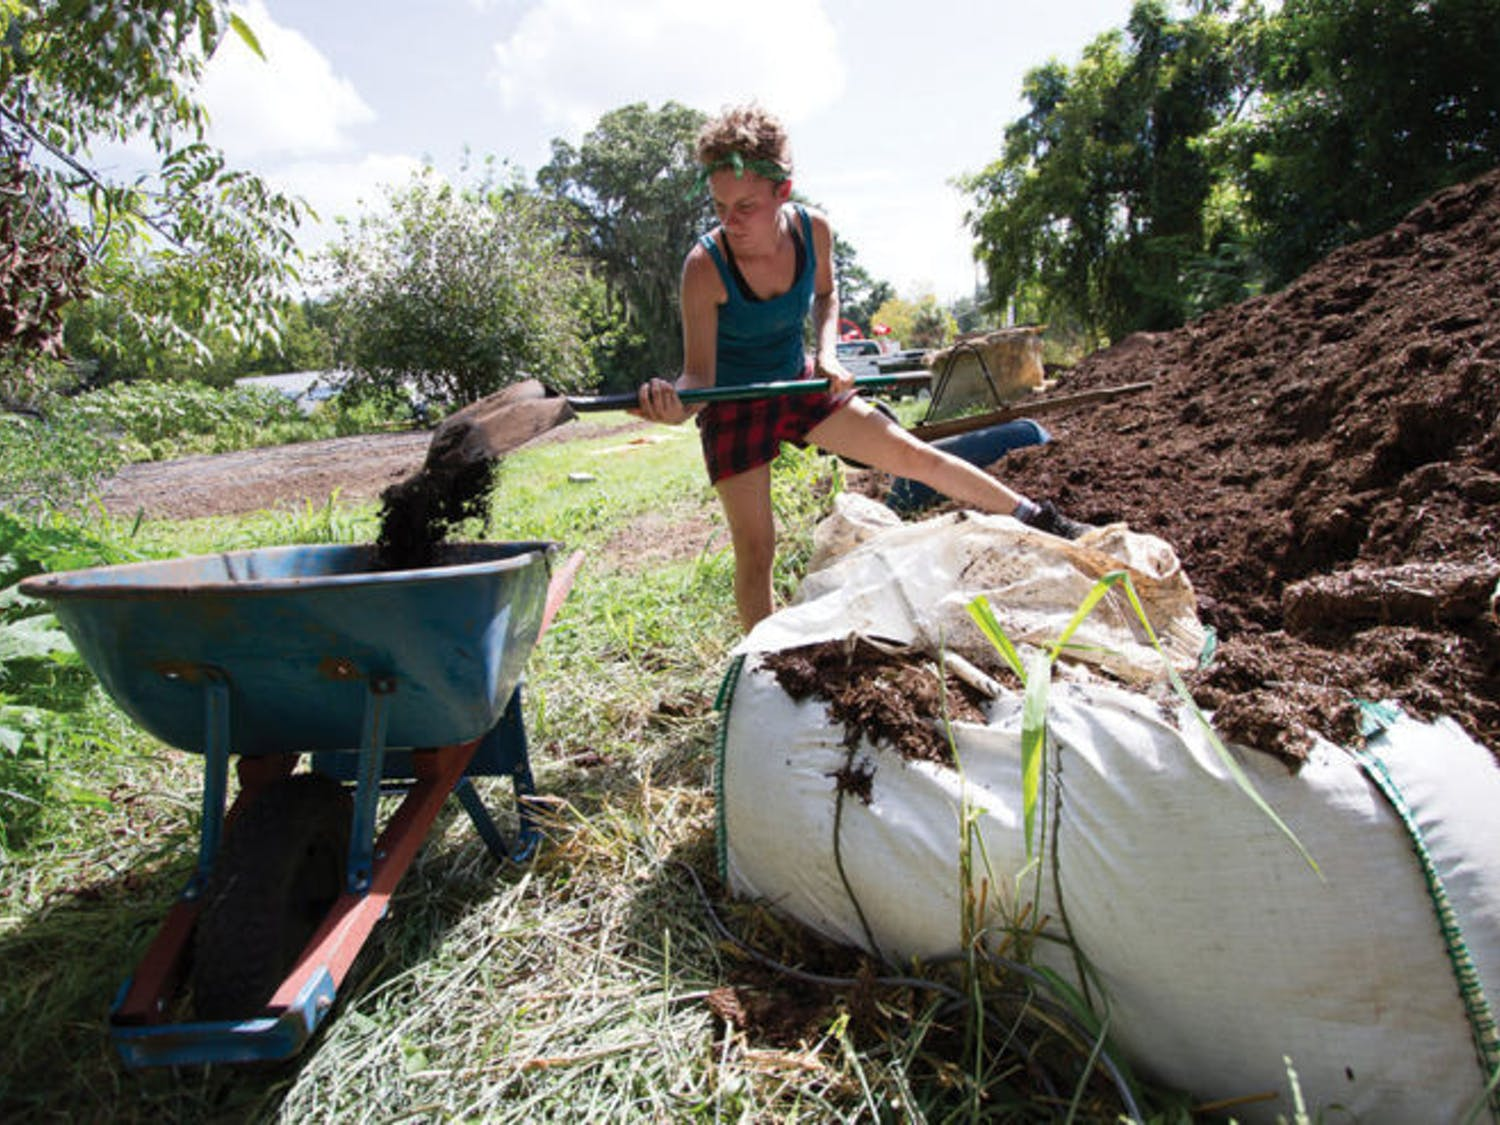 Ellen Vessels, 27, coordinator of the Florida Organic Growers GIFT Gardens program, shovels compost at Porters Community Garden, located at 518 SW Third St.